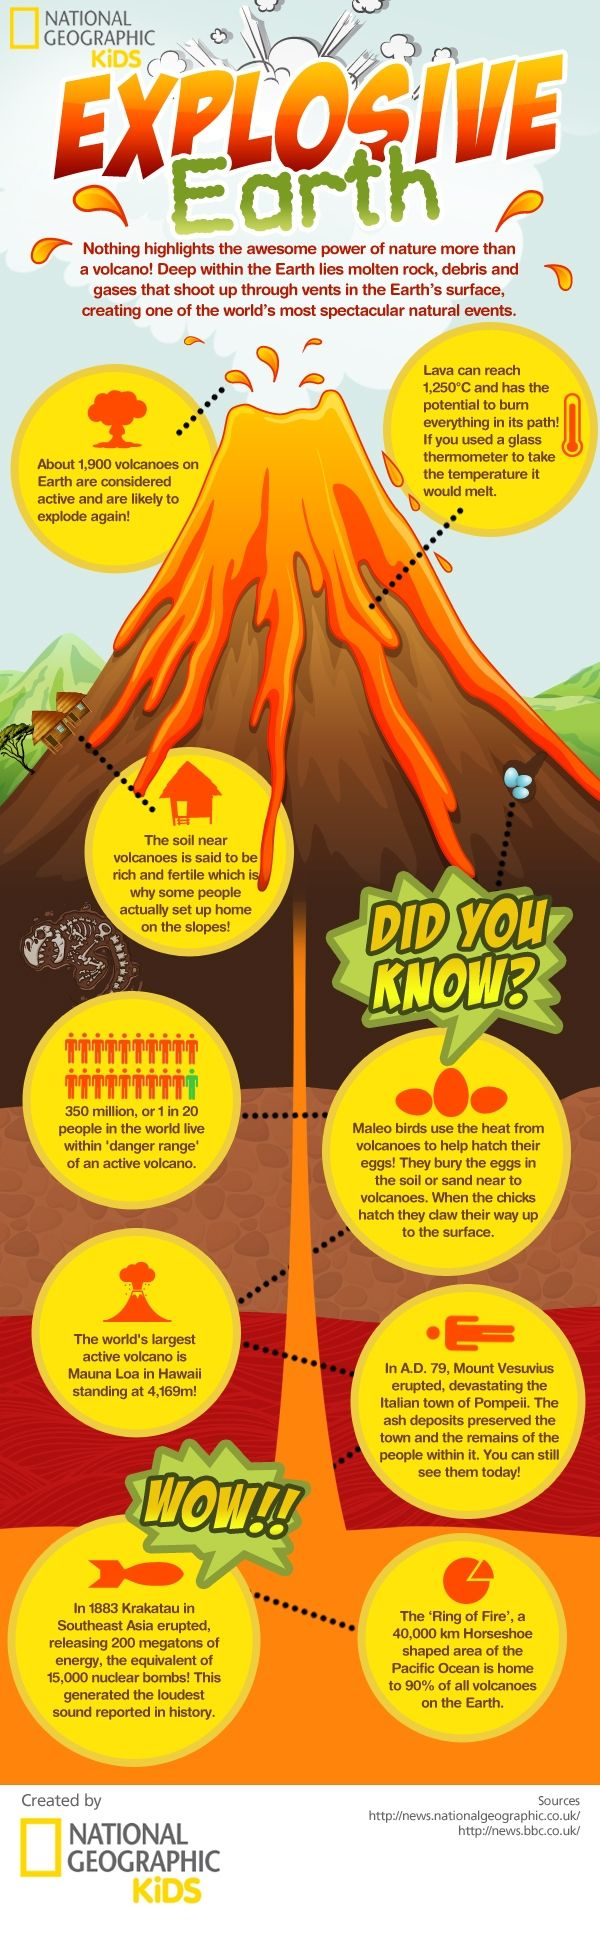 Cool infographic about volcanoes! #earth #nature